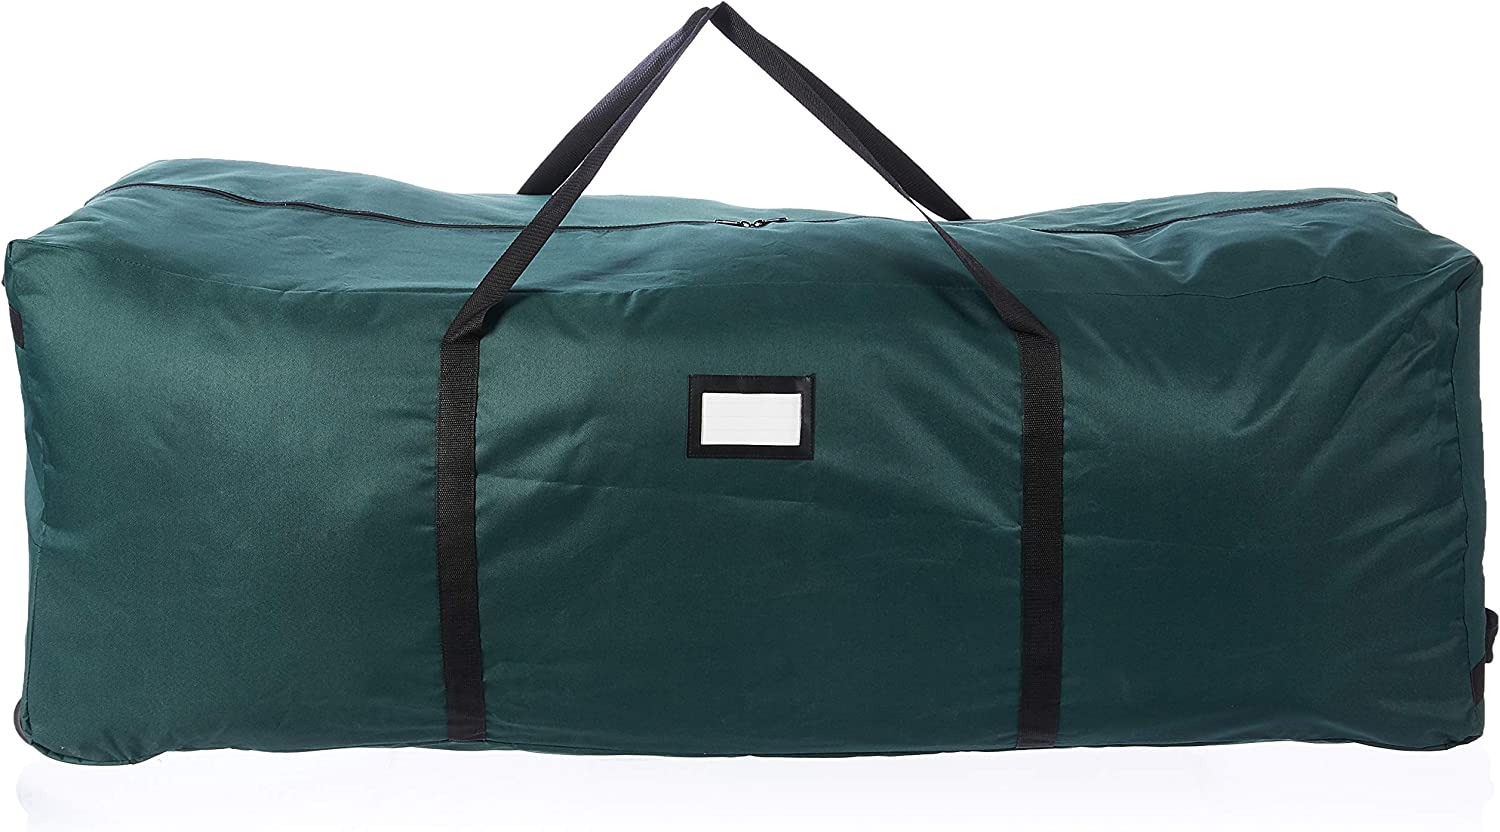 Green Holds a 9 ft Artificial Tree Elf Stor Rolling Duffel Bag Style Christmas Tree Storage Bag